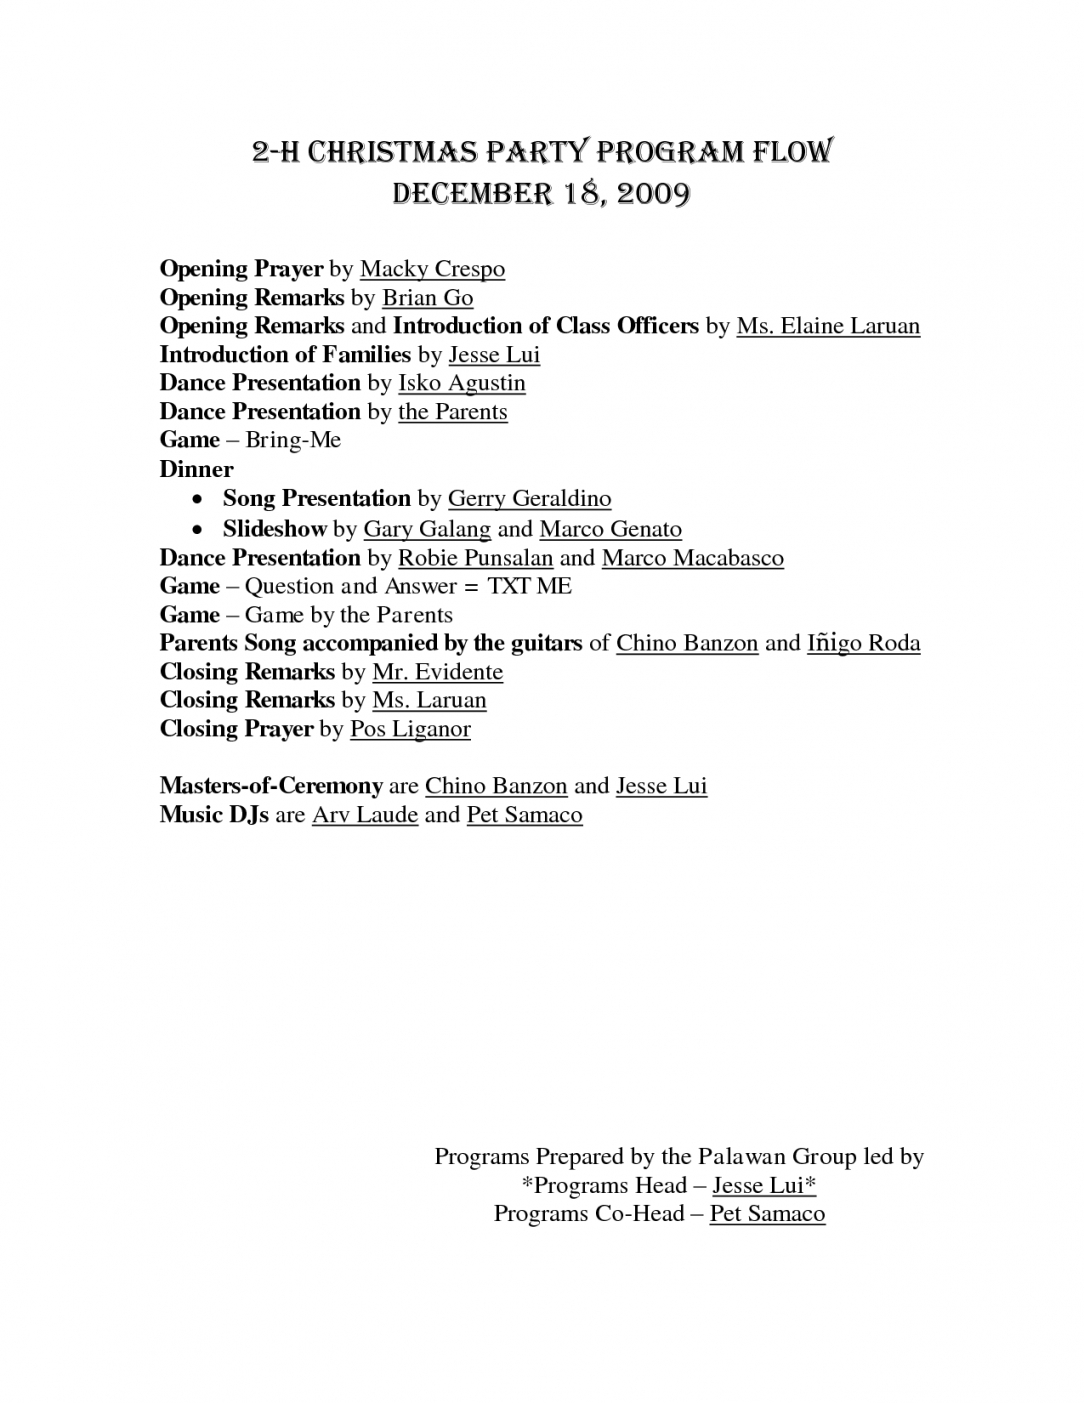 Christmas Party Itinerary Template Kairo.9terrains.co Holiday Party Agenda Template